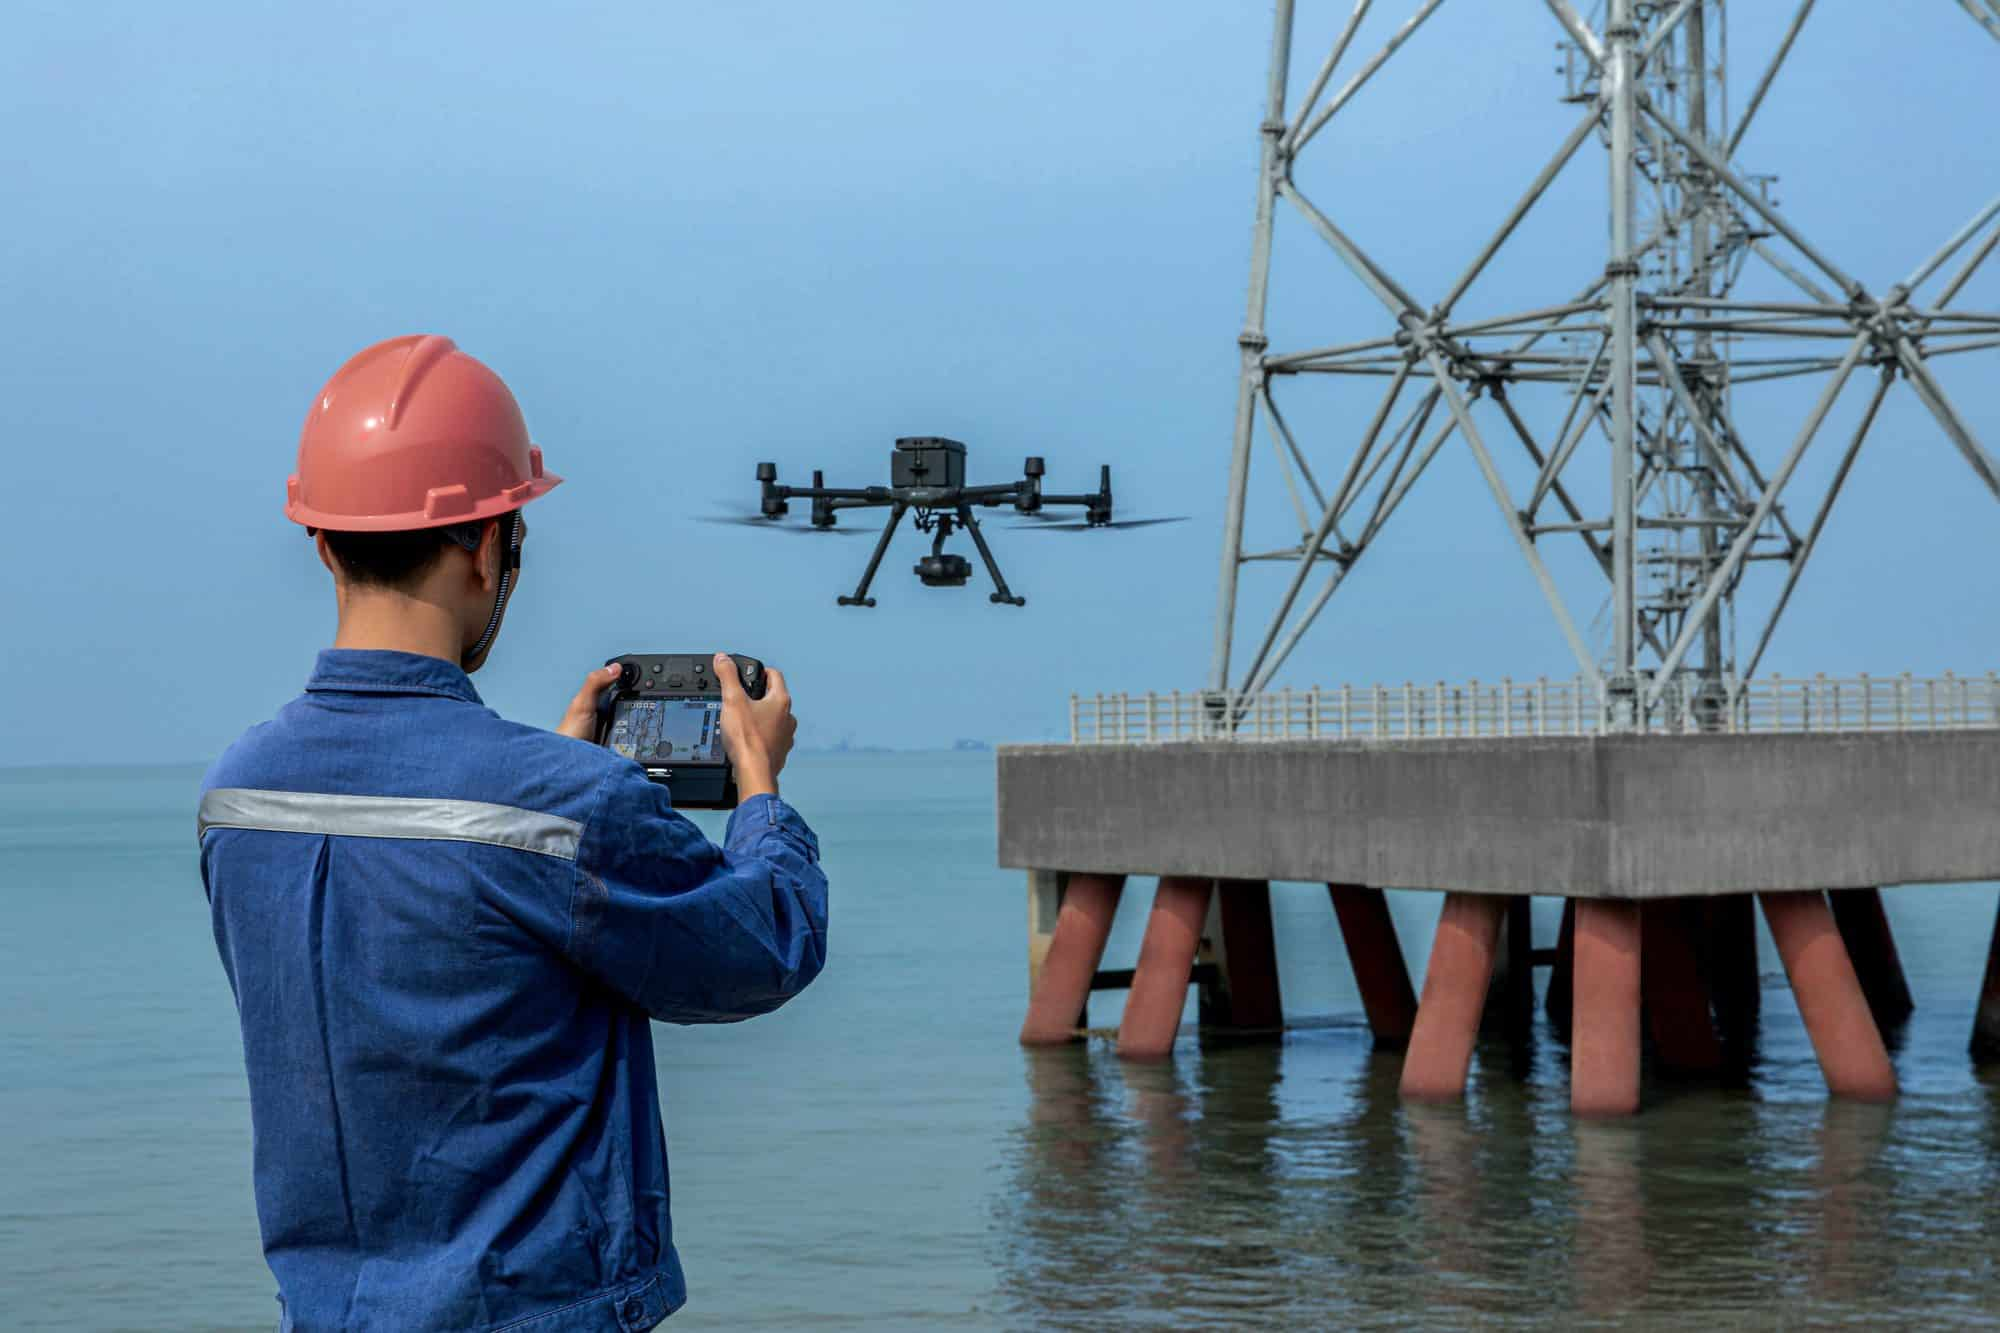 Drone industry powers on to be worth US$92 billion by 2030, says ABI Research